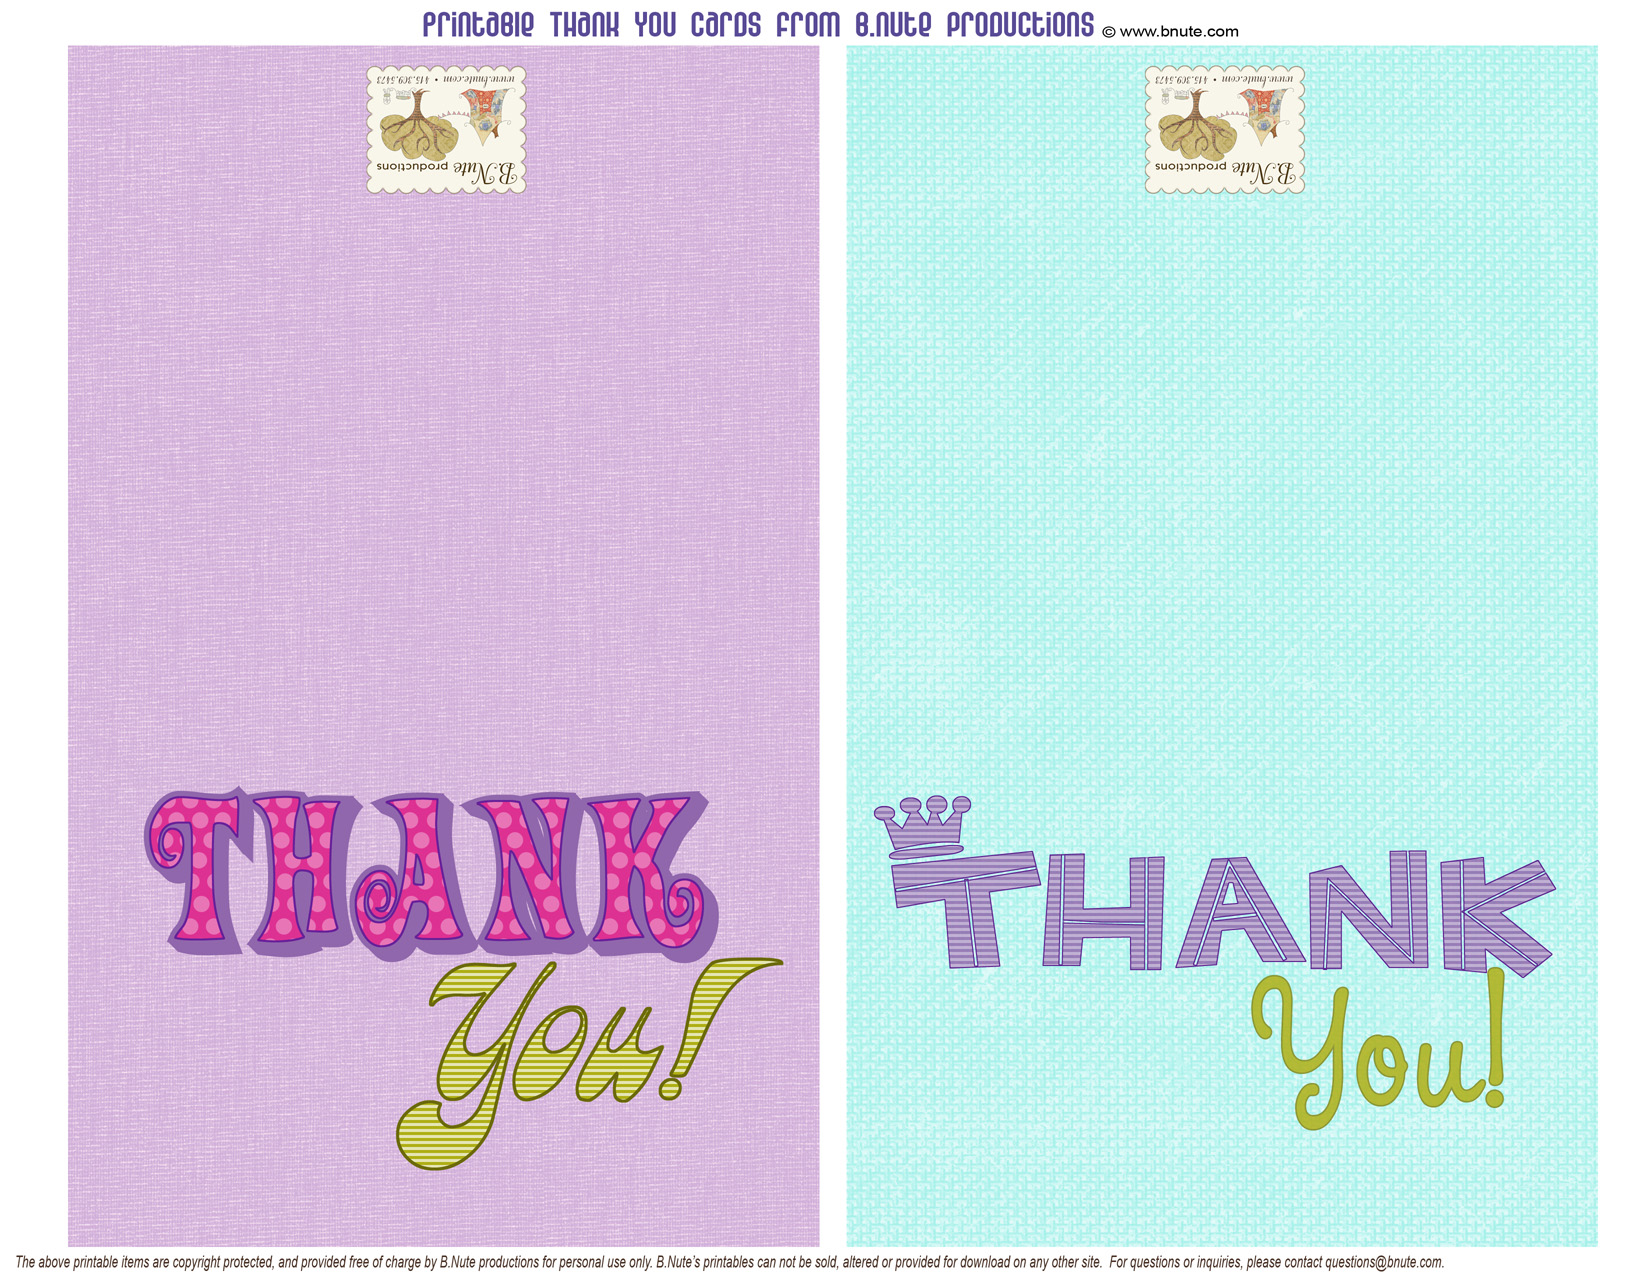 image regarding Free Printable Thank You Cards for Students called bnute productions: Free of charge Printable Thank On your own Playing cards for the Youngsters